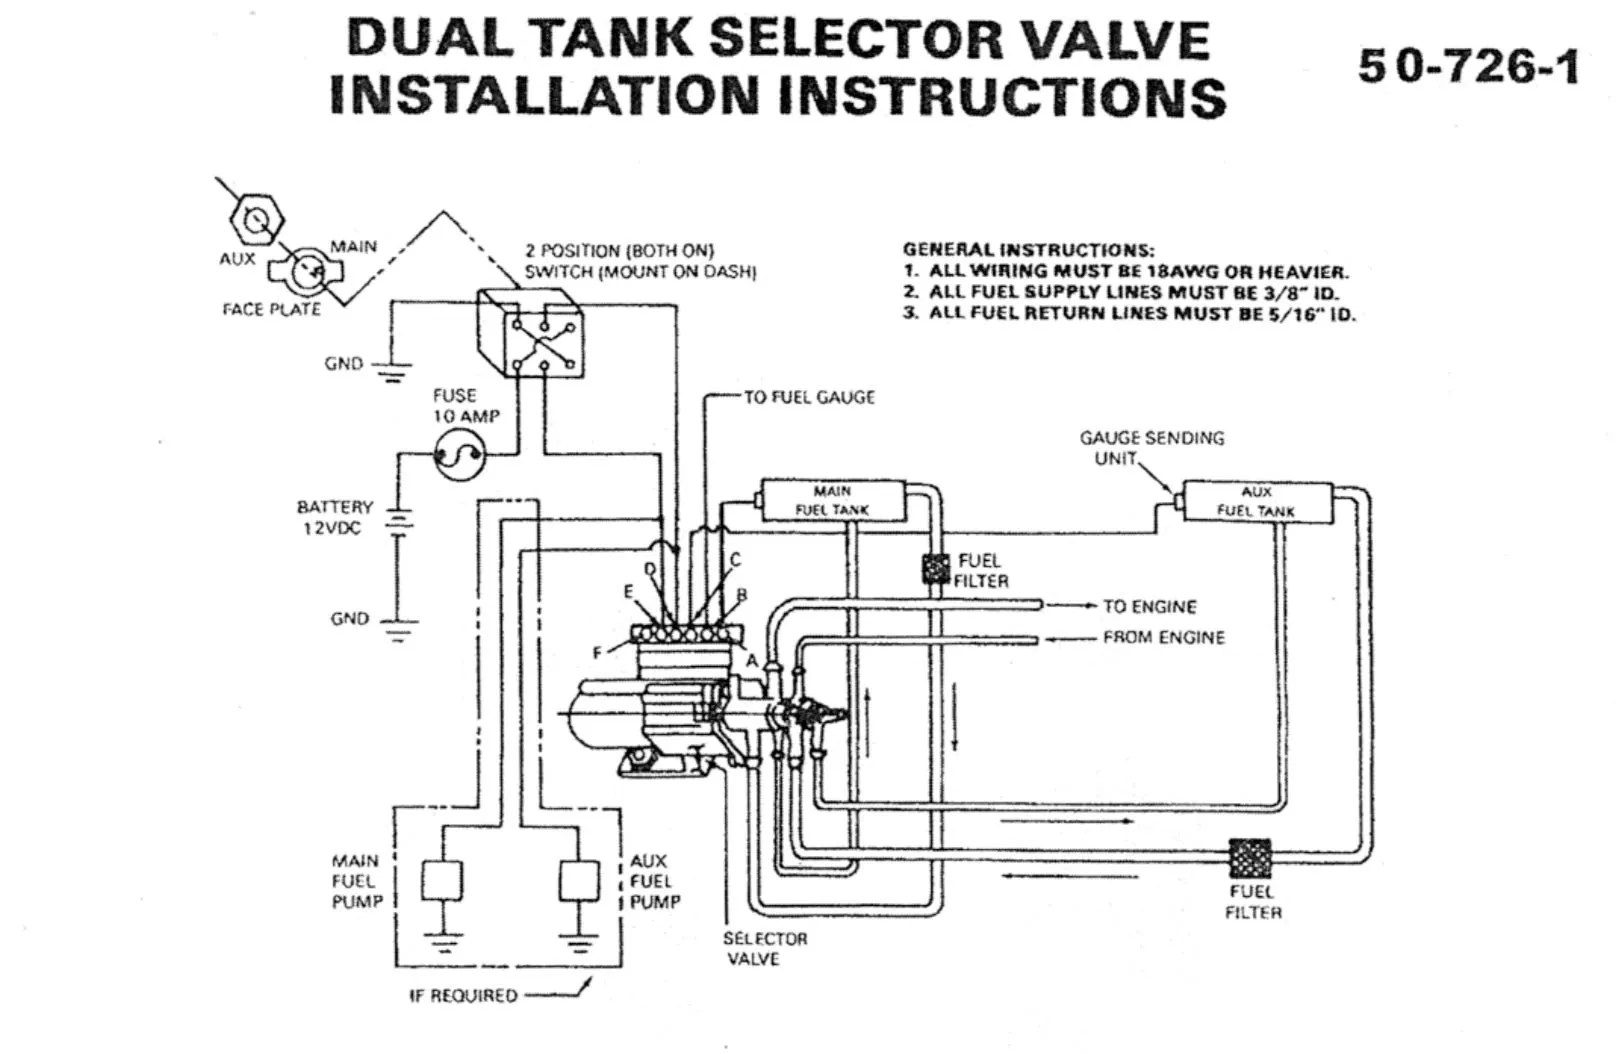 3 Port Valve Wiring Diagram